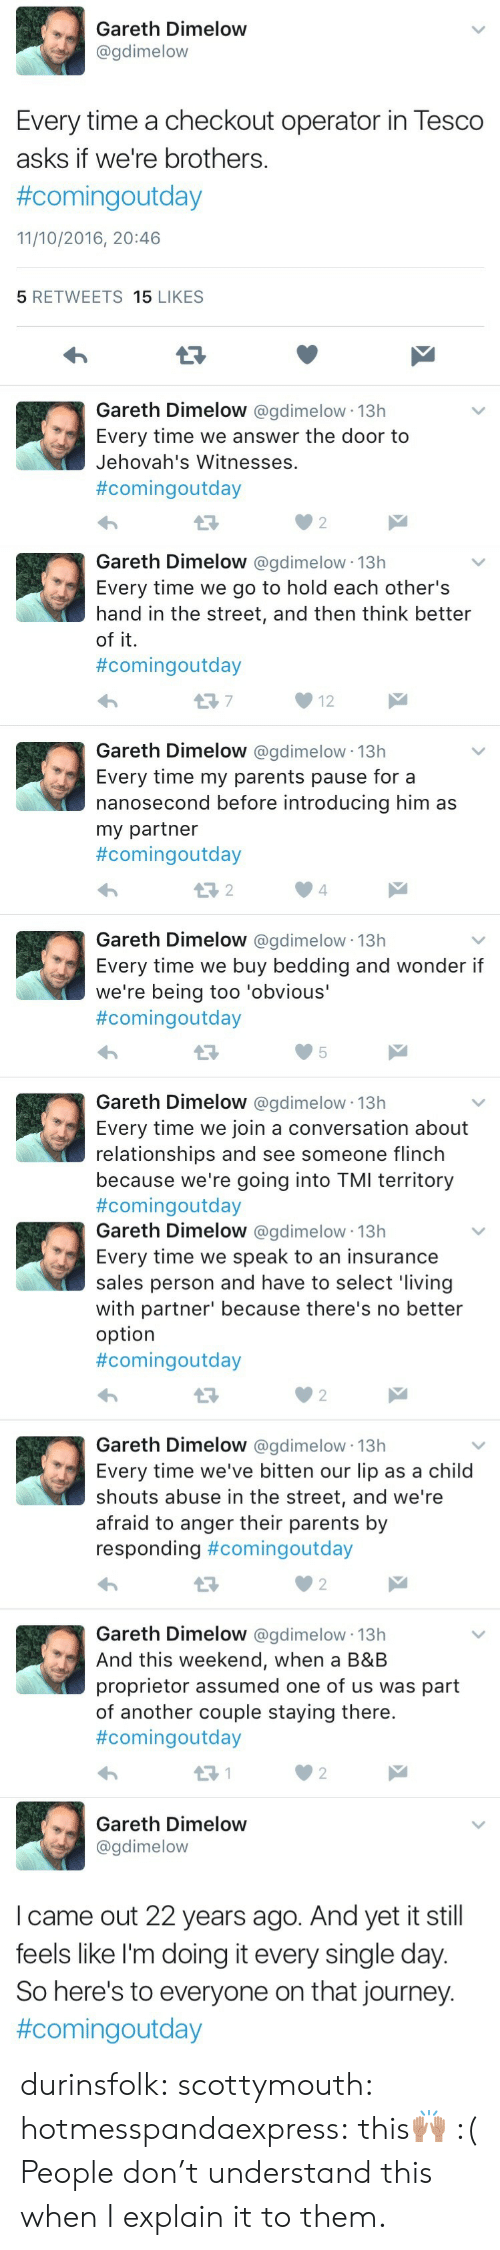 Journey, Parents, and Relationships: Gareth Dimelow  @gdimelow  Every time a checkout operator in Tesco  asks if we're brothers.  #comingoutday  11/10/2016, 20:46  5 RETWEETS 15 LIKES  Gareth Dimelow @gdimelow 13h  Every time we answer the door to  Jehovah's Witnesses  #comingoutday  02   Gareth Dimelow @gdimelow 13h  Every time we go to hold each other's  hand in the street, and then think better  of it.  #comingoutday  12  Gareth Dimelow @gdimelow 13h  Every time my parents pause for a  nanosecond before introducing him as  my partner  #comingOutday  4  Gareth Dimelow @gdimelow 13h  Every time we buy bedding and wonder if  we're being too 'obvious'  #comingoutday  Gareth Dimelow @gdimelow 13h  Every time we join a conversation about  relationships and see someone flinch  because we're going into TMI territory  #comingoutday   Gareth Dimelow @gdimelow 13h  Every time we speak to an insurance  sales person and have to select 'living  with partner' because there's no better  option  #comingoutday  0 2  Gareth Dimelow @gdimelow 13h  Every time we've bitten our lip as a child  shouts abuse in the street, and we're  afraid to anger their parents by  responding #comingoutday  Gareth Dimelow @gdimelow 13h  And this weekend, when a B&B  proprietor assumed one of us was part  of another couple staying there.  #comingoutday  2   Gareth Dimelow  @gdimelow  I came out 22 years ago. And yet it still  feels like l'm doing it every single day.  So here's to everyone on that journey.  durinsfolk: scottymouth:  hotmesspandaexpress:  this🙌🏽   :(   People don't understand this when I explain it to them.